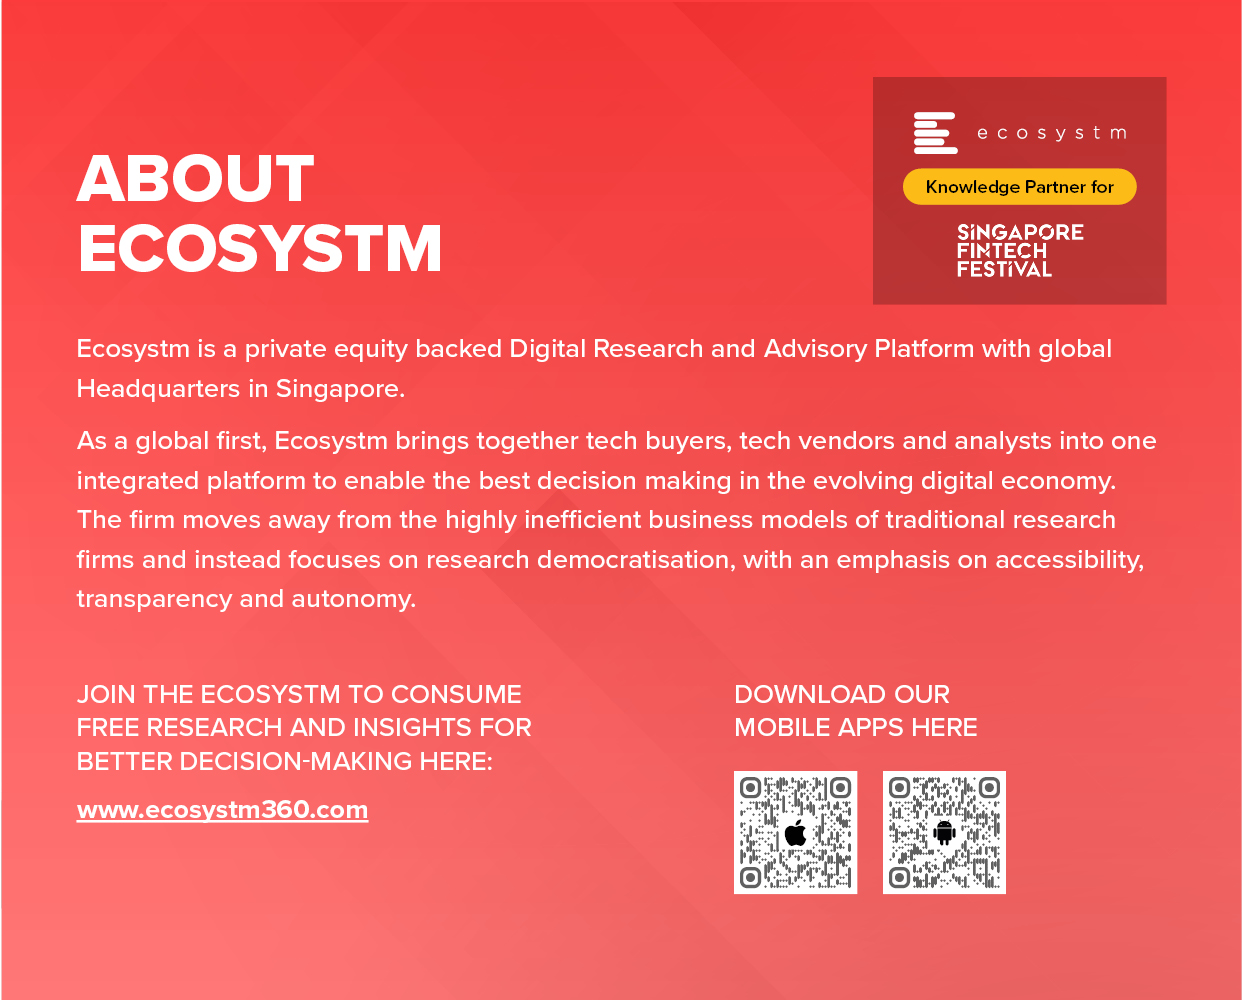 About Ecosystm 2